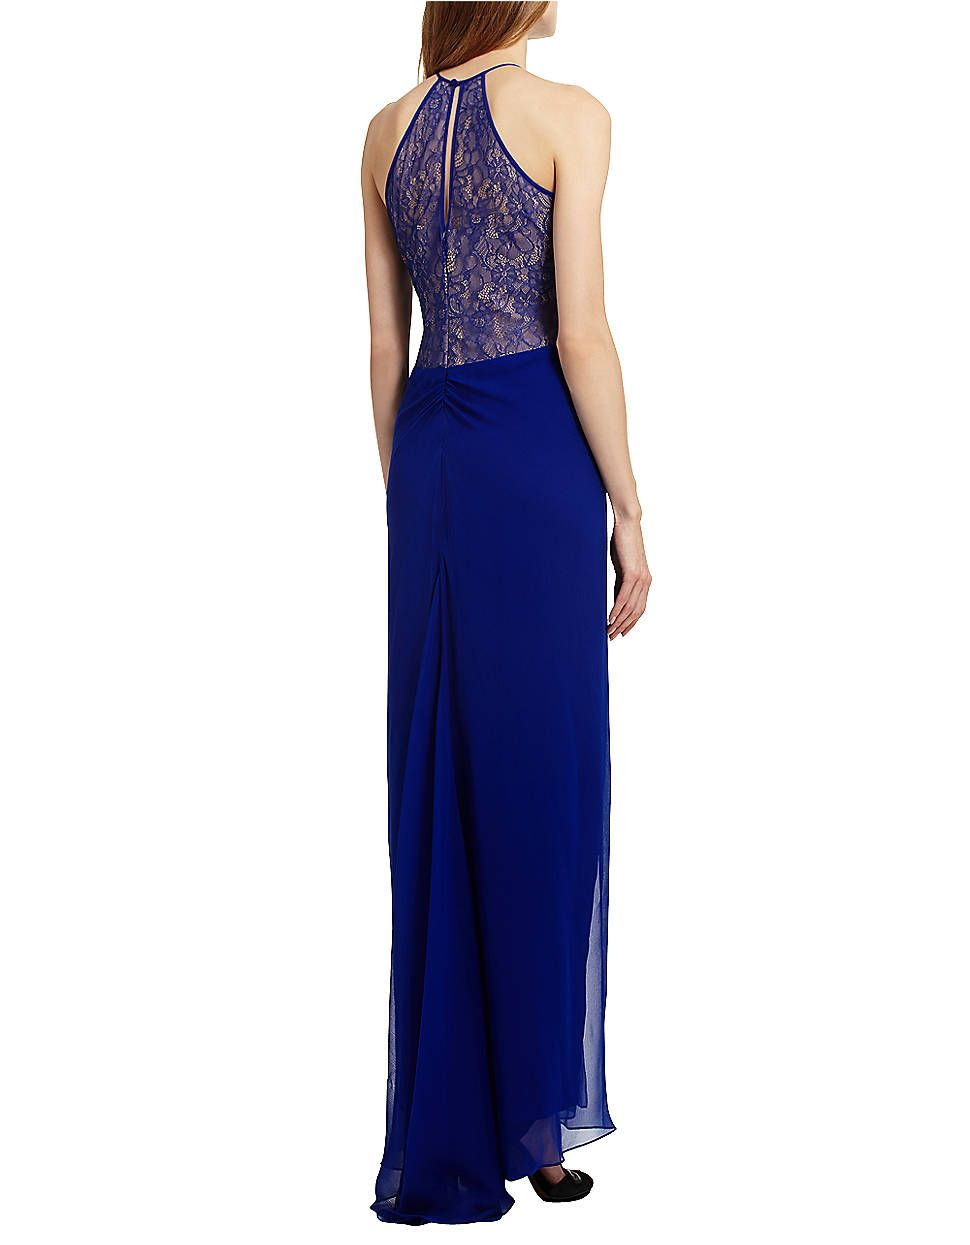 Lord And Taylor Evening Maxi Dresses